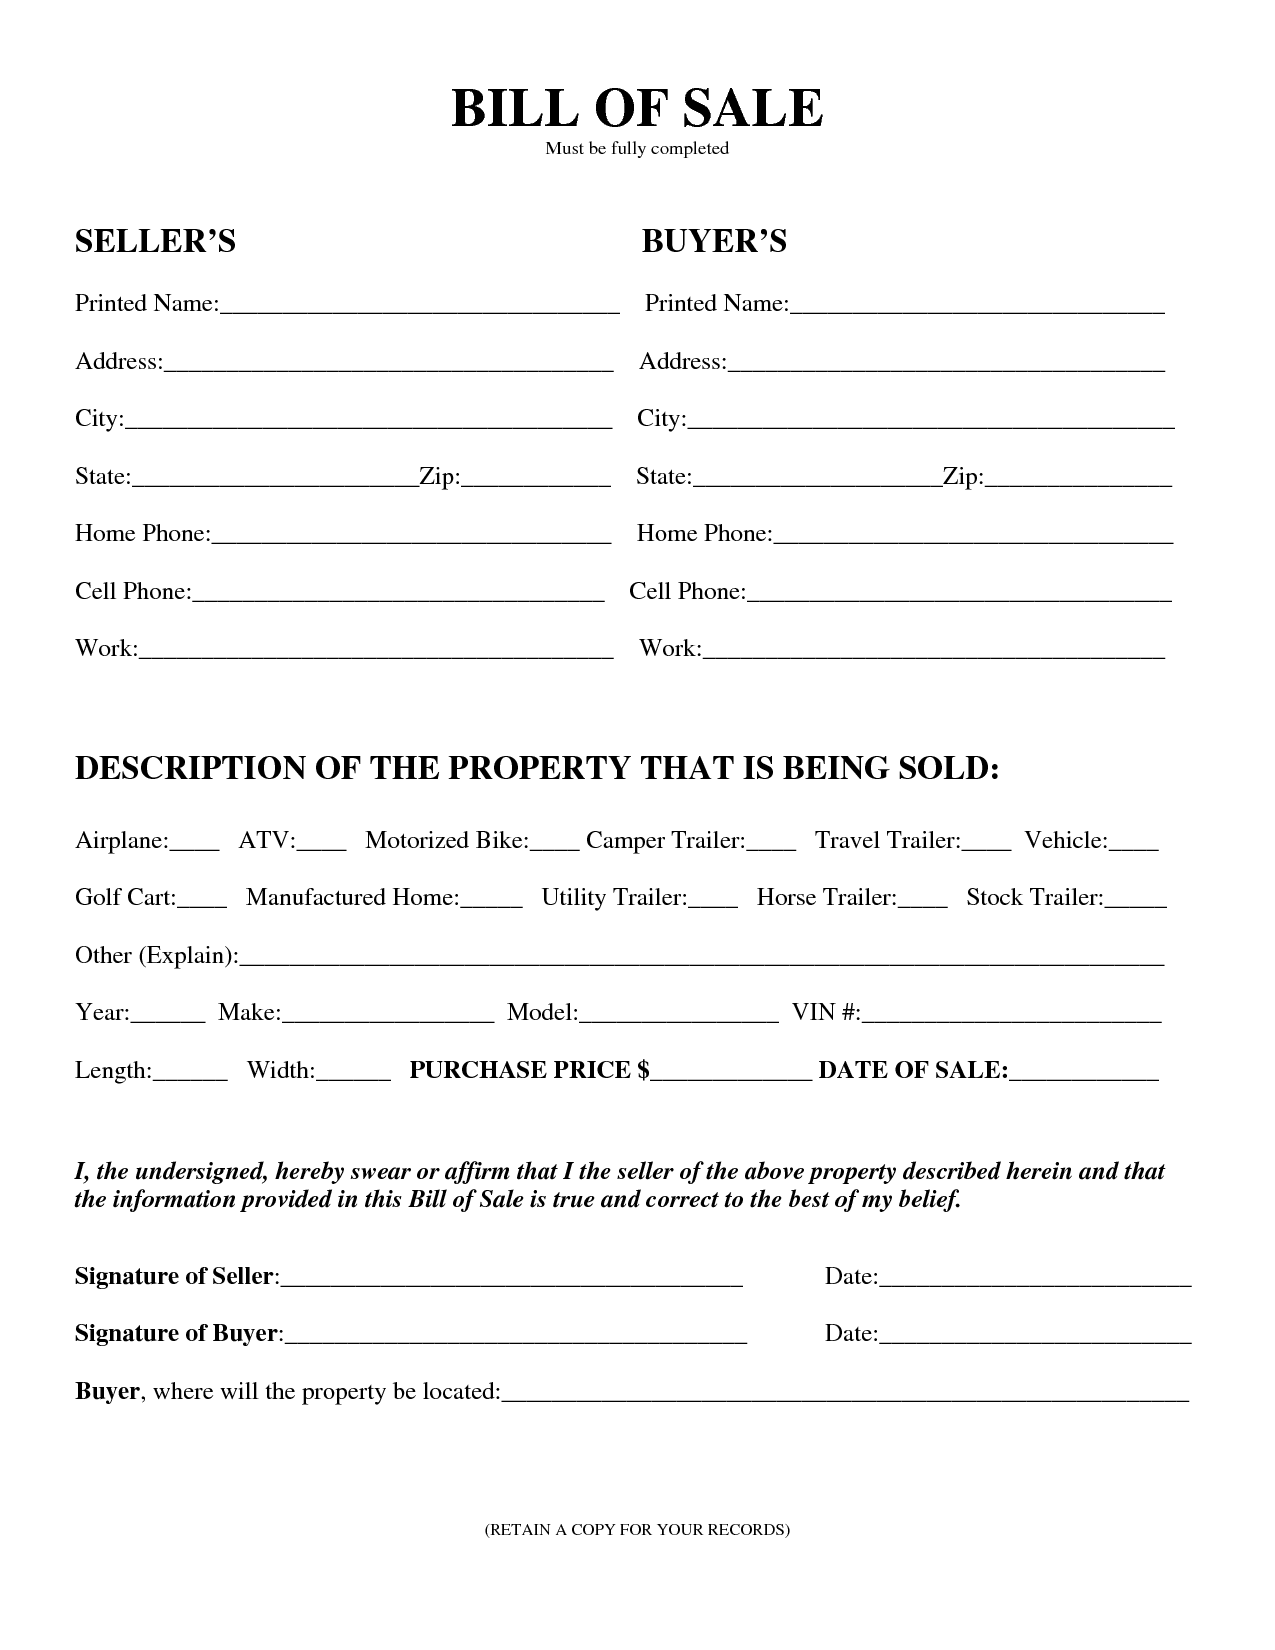 pin by patt mclaughlin on bill of sale pinterest legal forms